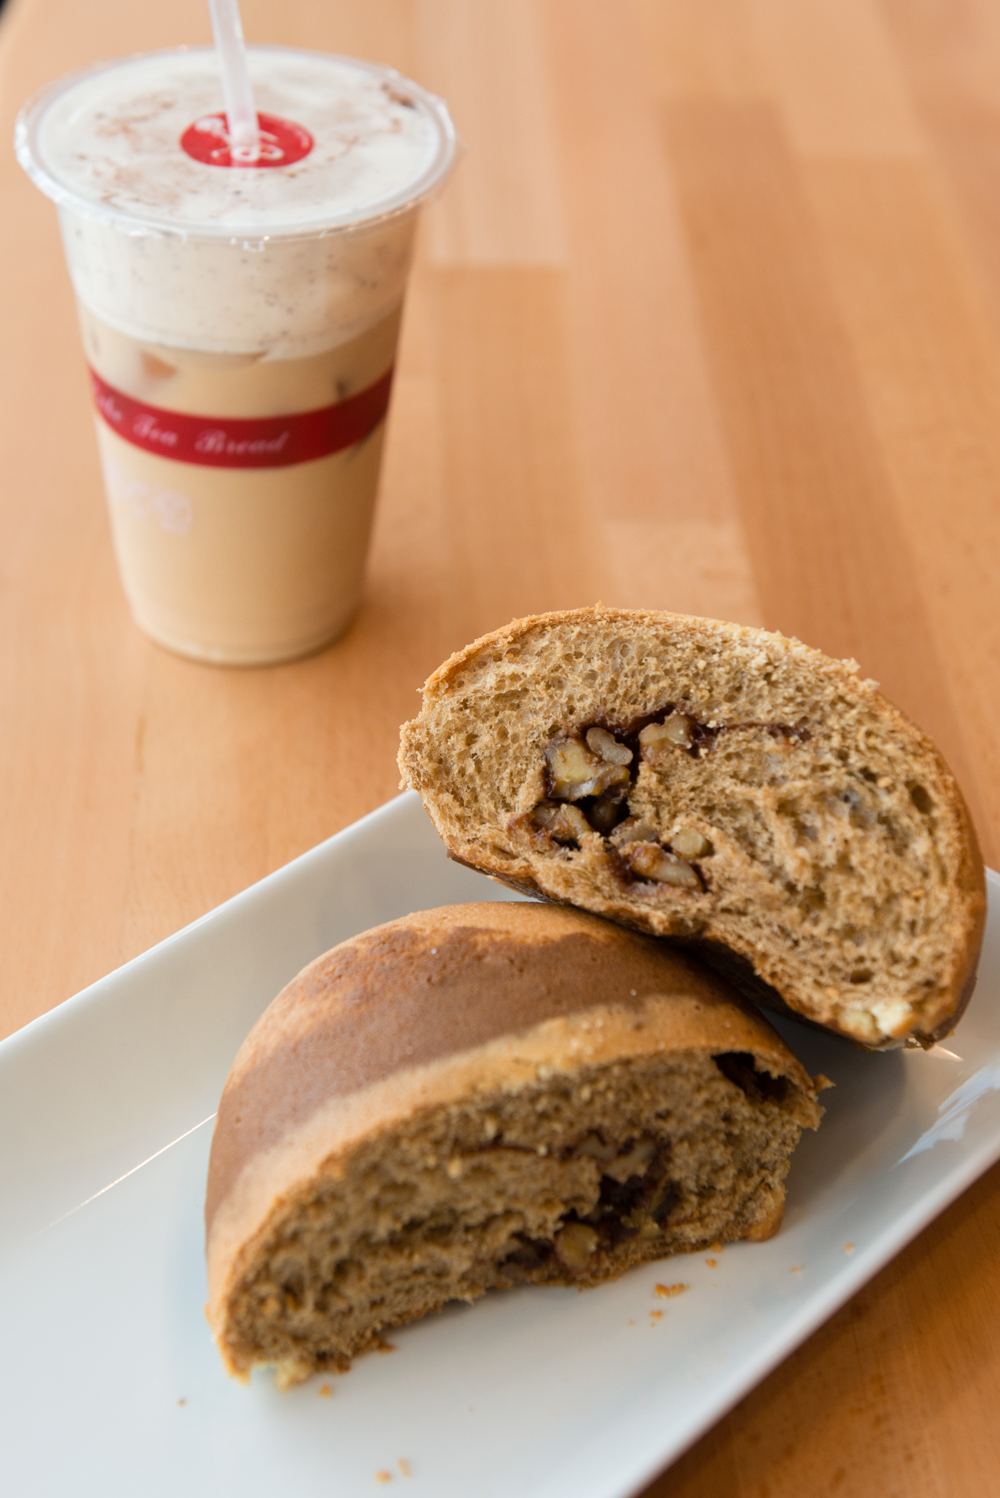 Friday, February 24 is the store's official grand opening, though they've been not-so-quietly selling the sea salt iced coffees and brioche breads from the new location for a week now. It's the chain's 26th location in the U.S. and one of 900 stores worldwide. (Image: Seattle Refined)